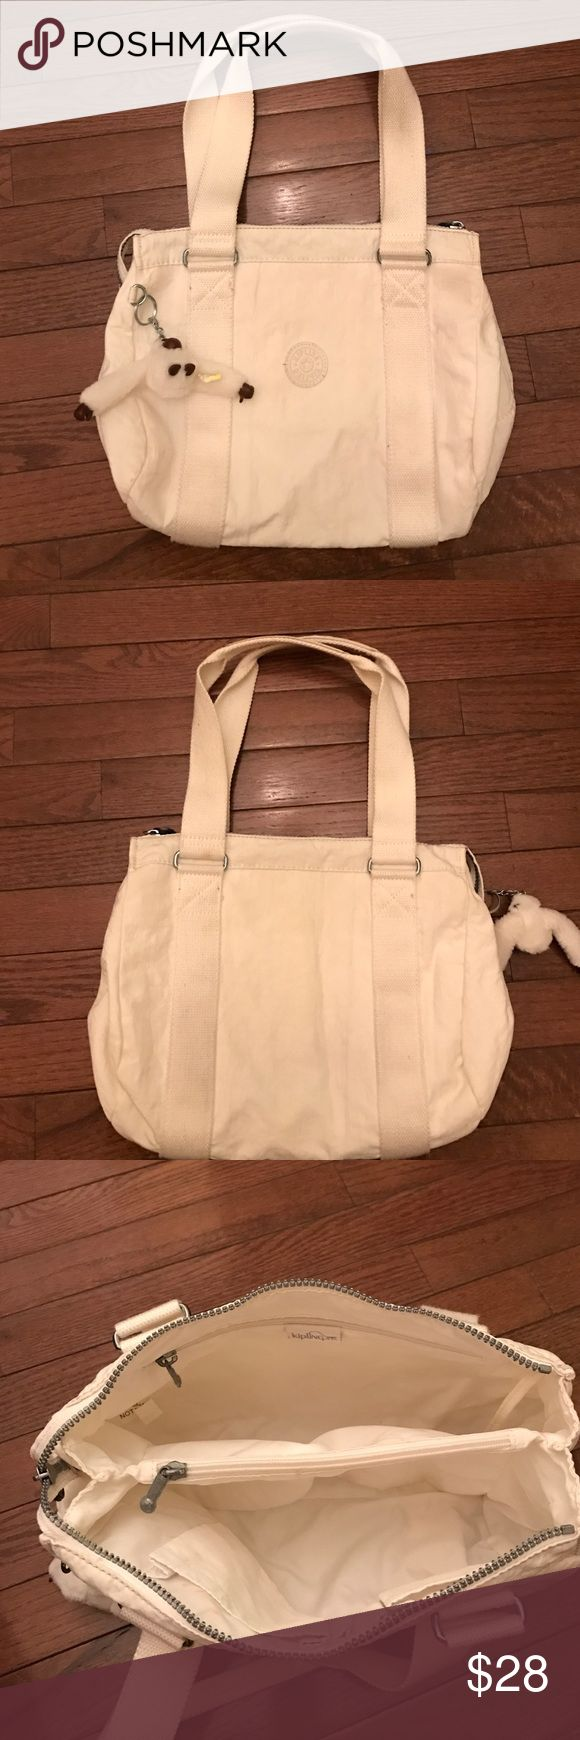 Kipling white handbag Gently used white Kipling handbag with slightly lipstick mark kissed inside of packet in the bag. Otherwise, no rip, stains, never been abused. been washed before this bag come out for sale. Kipling Bags Shoulder Bags